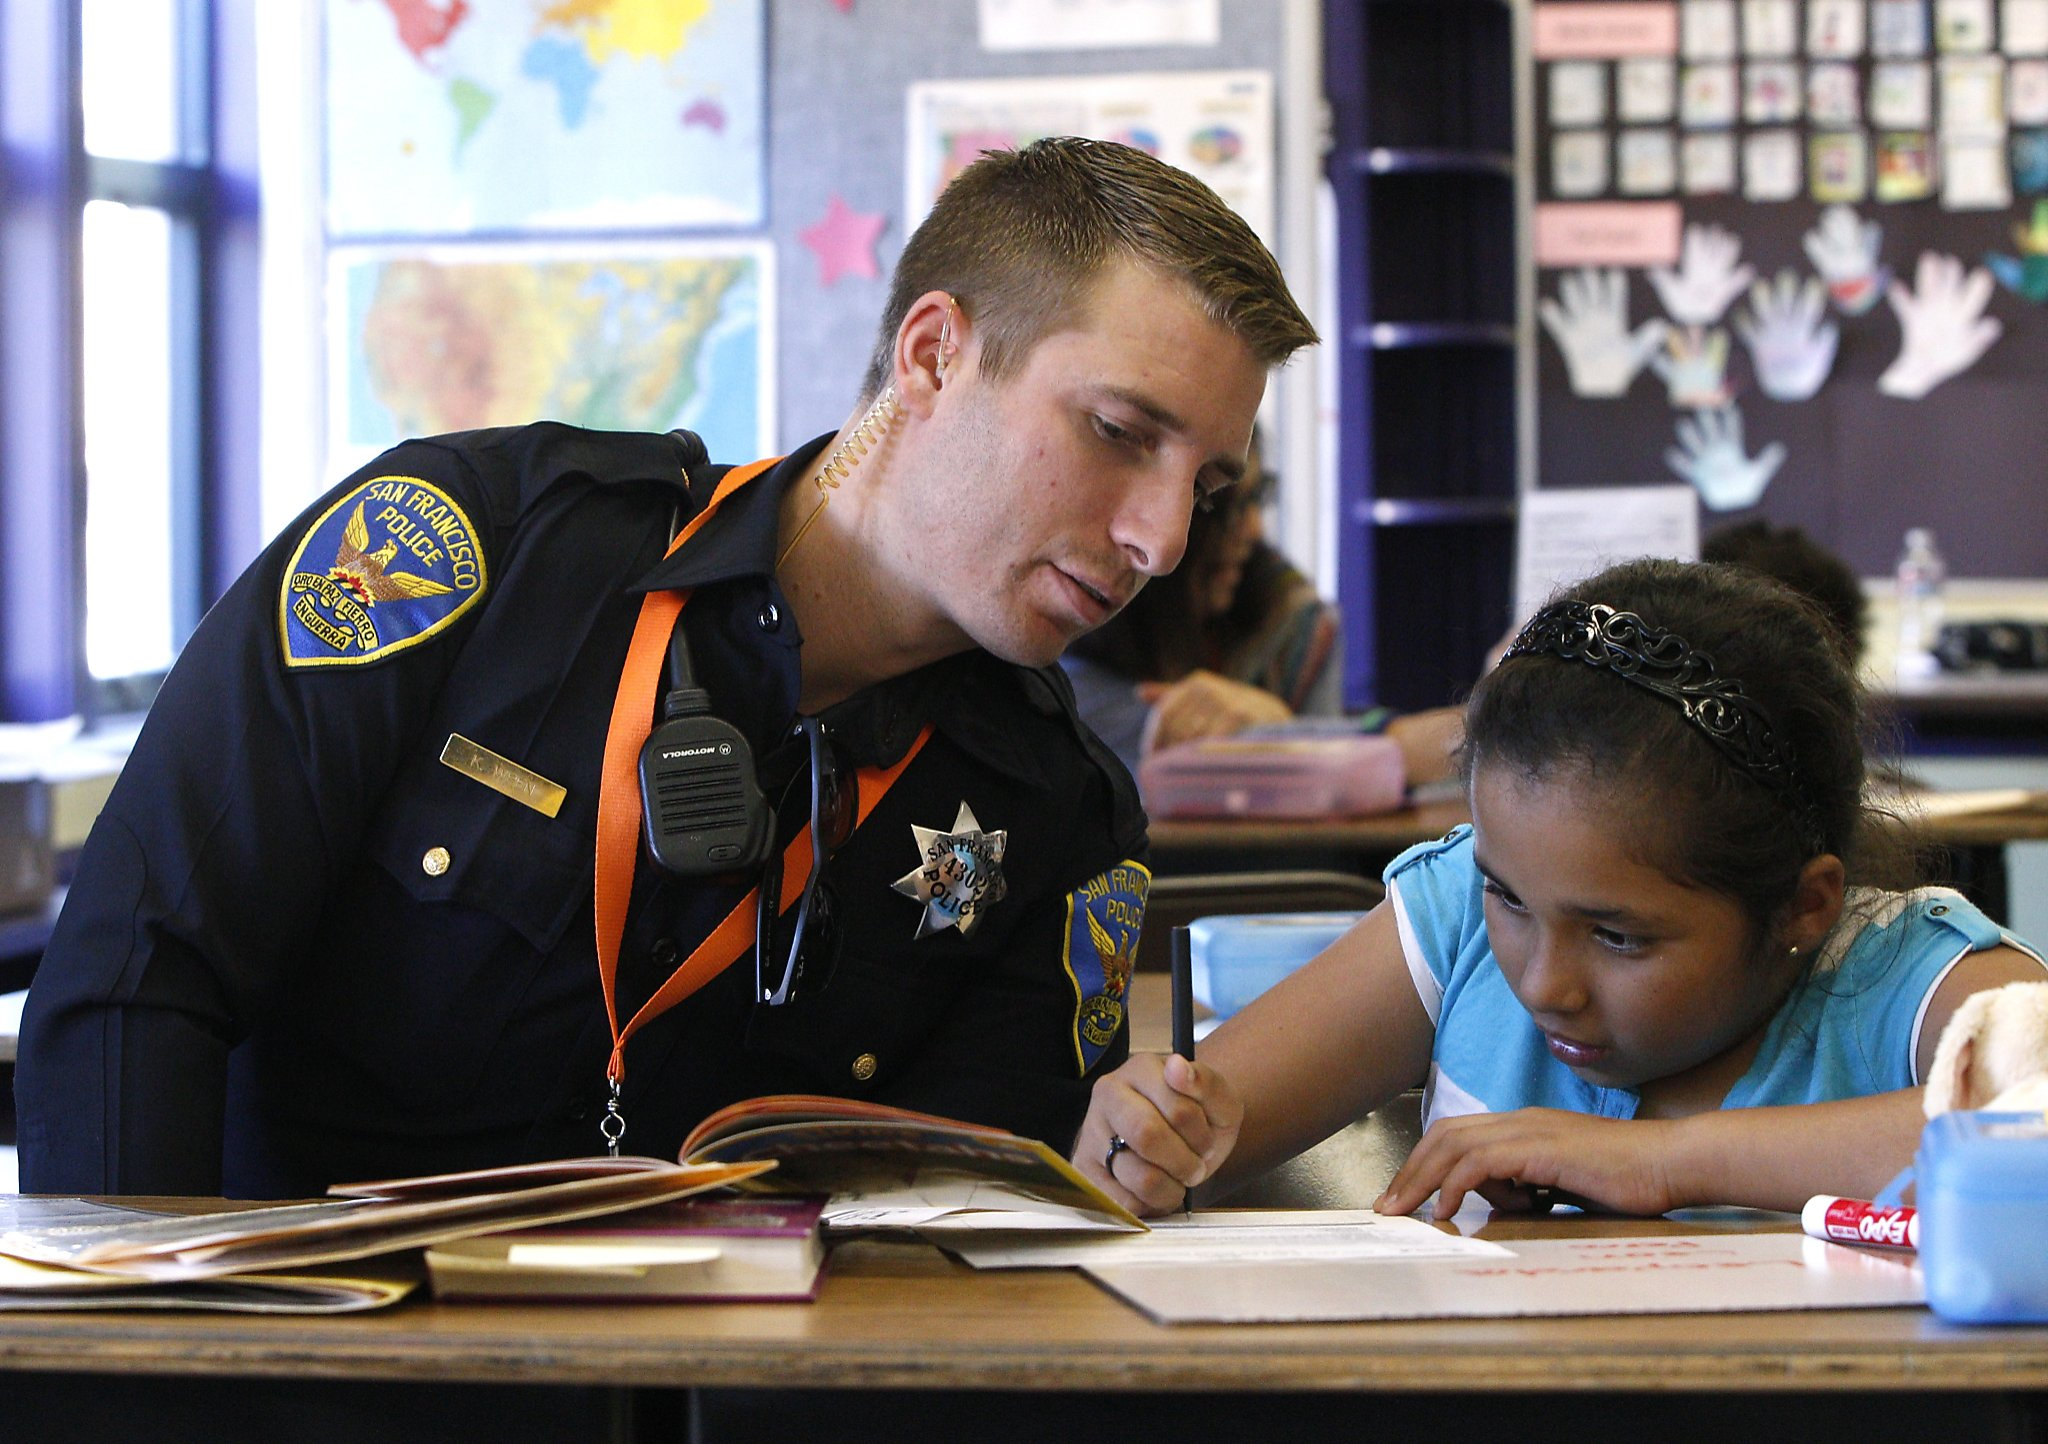 Cop Throws The Book At Bayview Kids As Reading Tutor